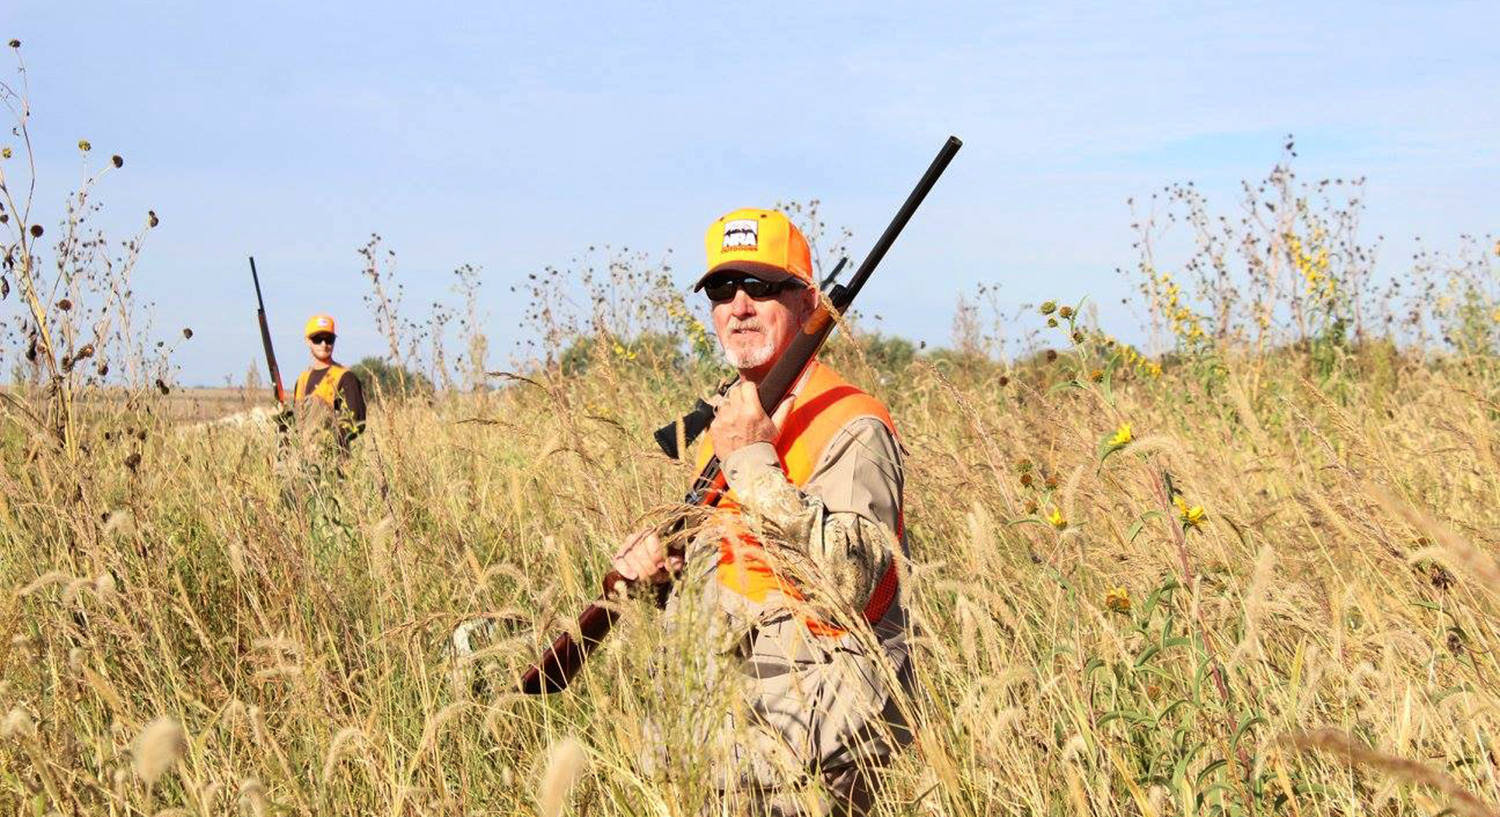 Upland Bird Hunting With NRA Outdoors